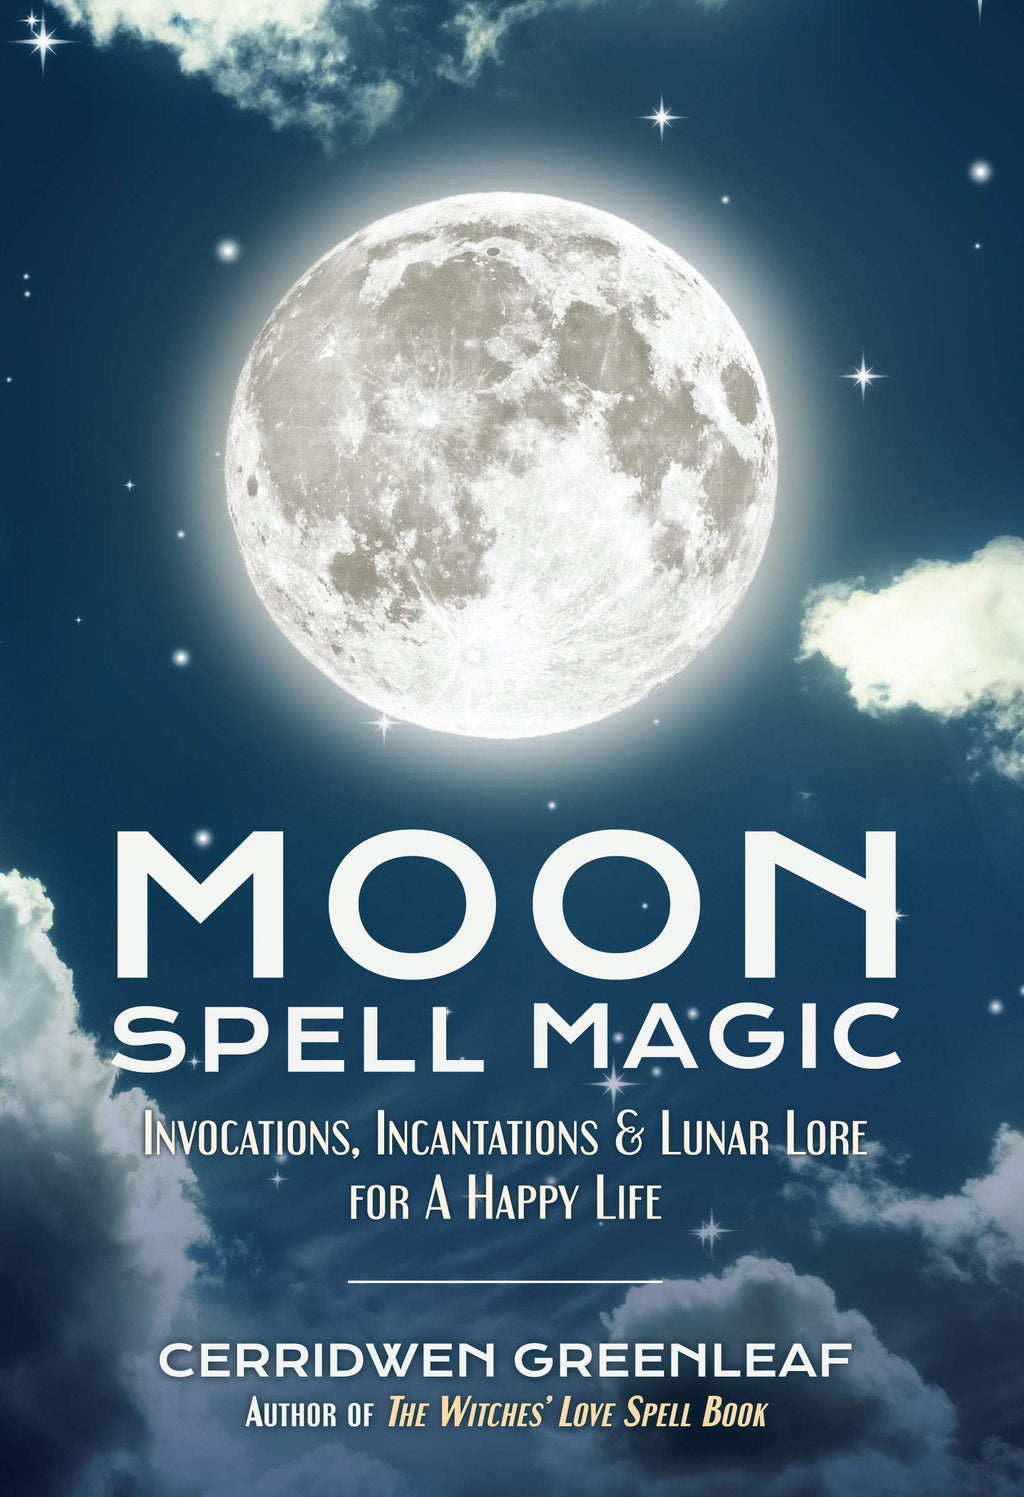 Moon Spell Magic by Cerridwen Greenleaf